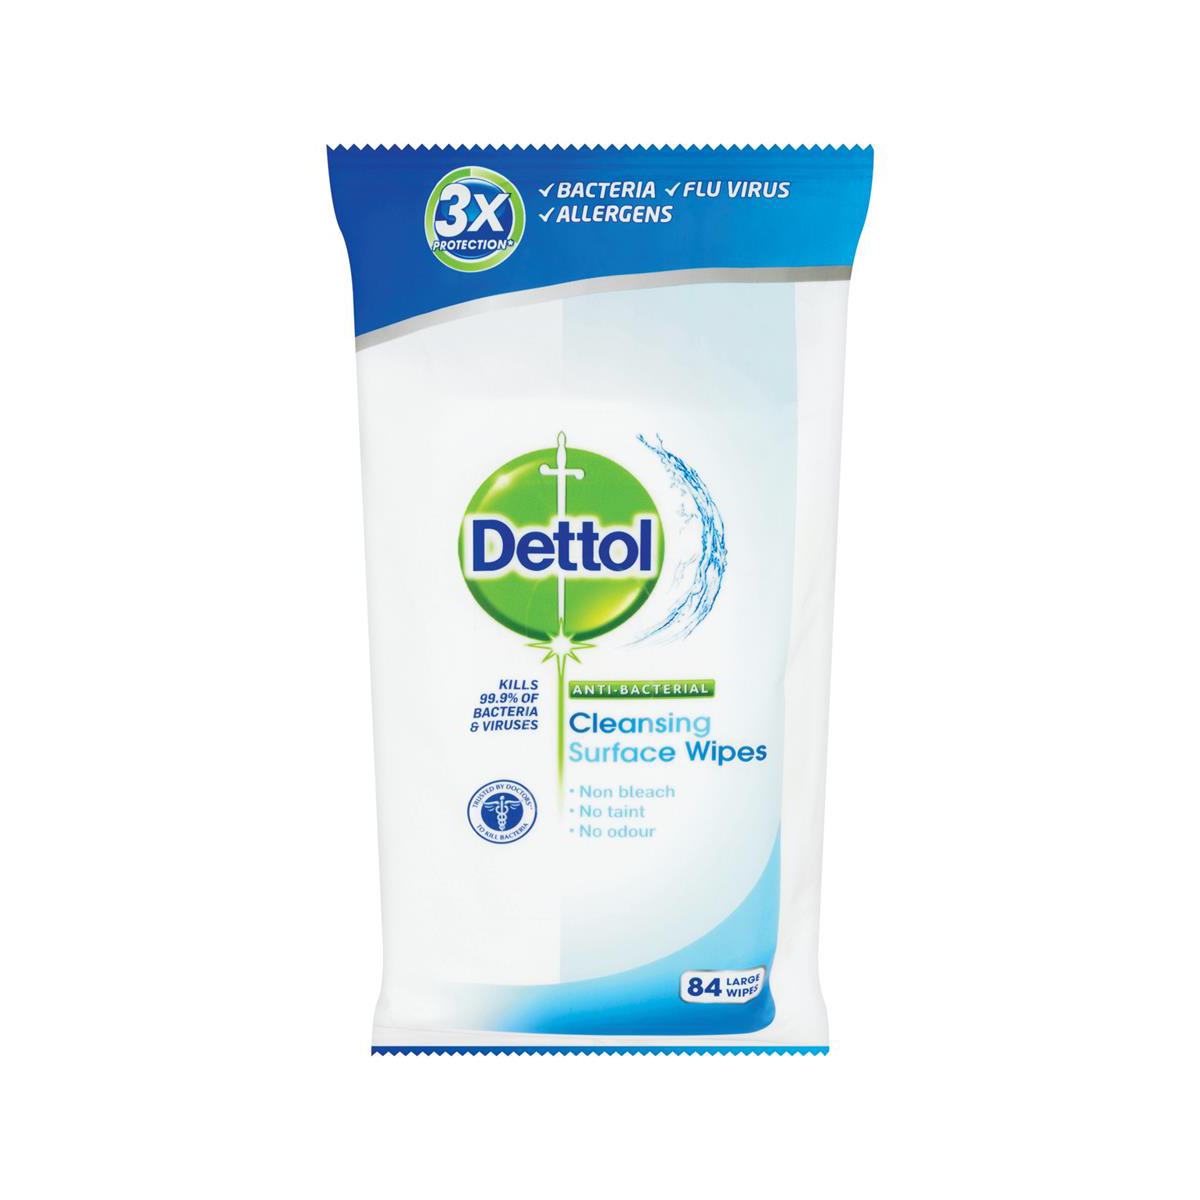 Dettol Antibac Clean Wipes BOGOF Jul6/18